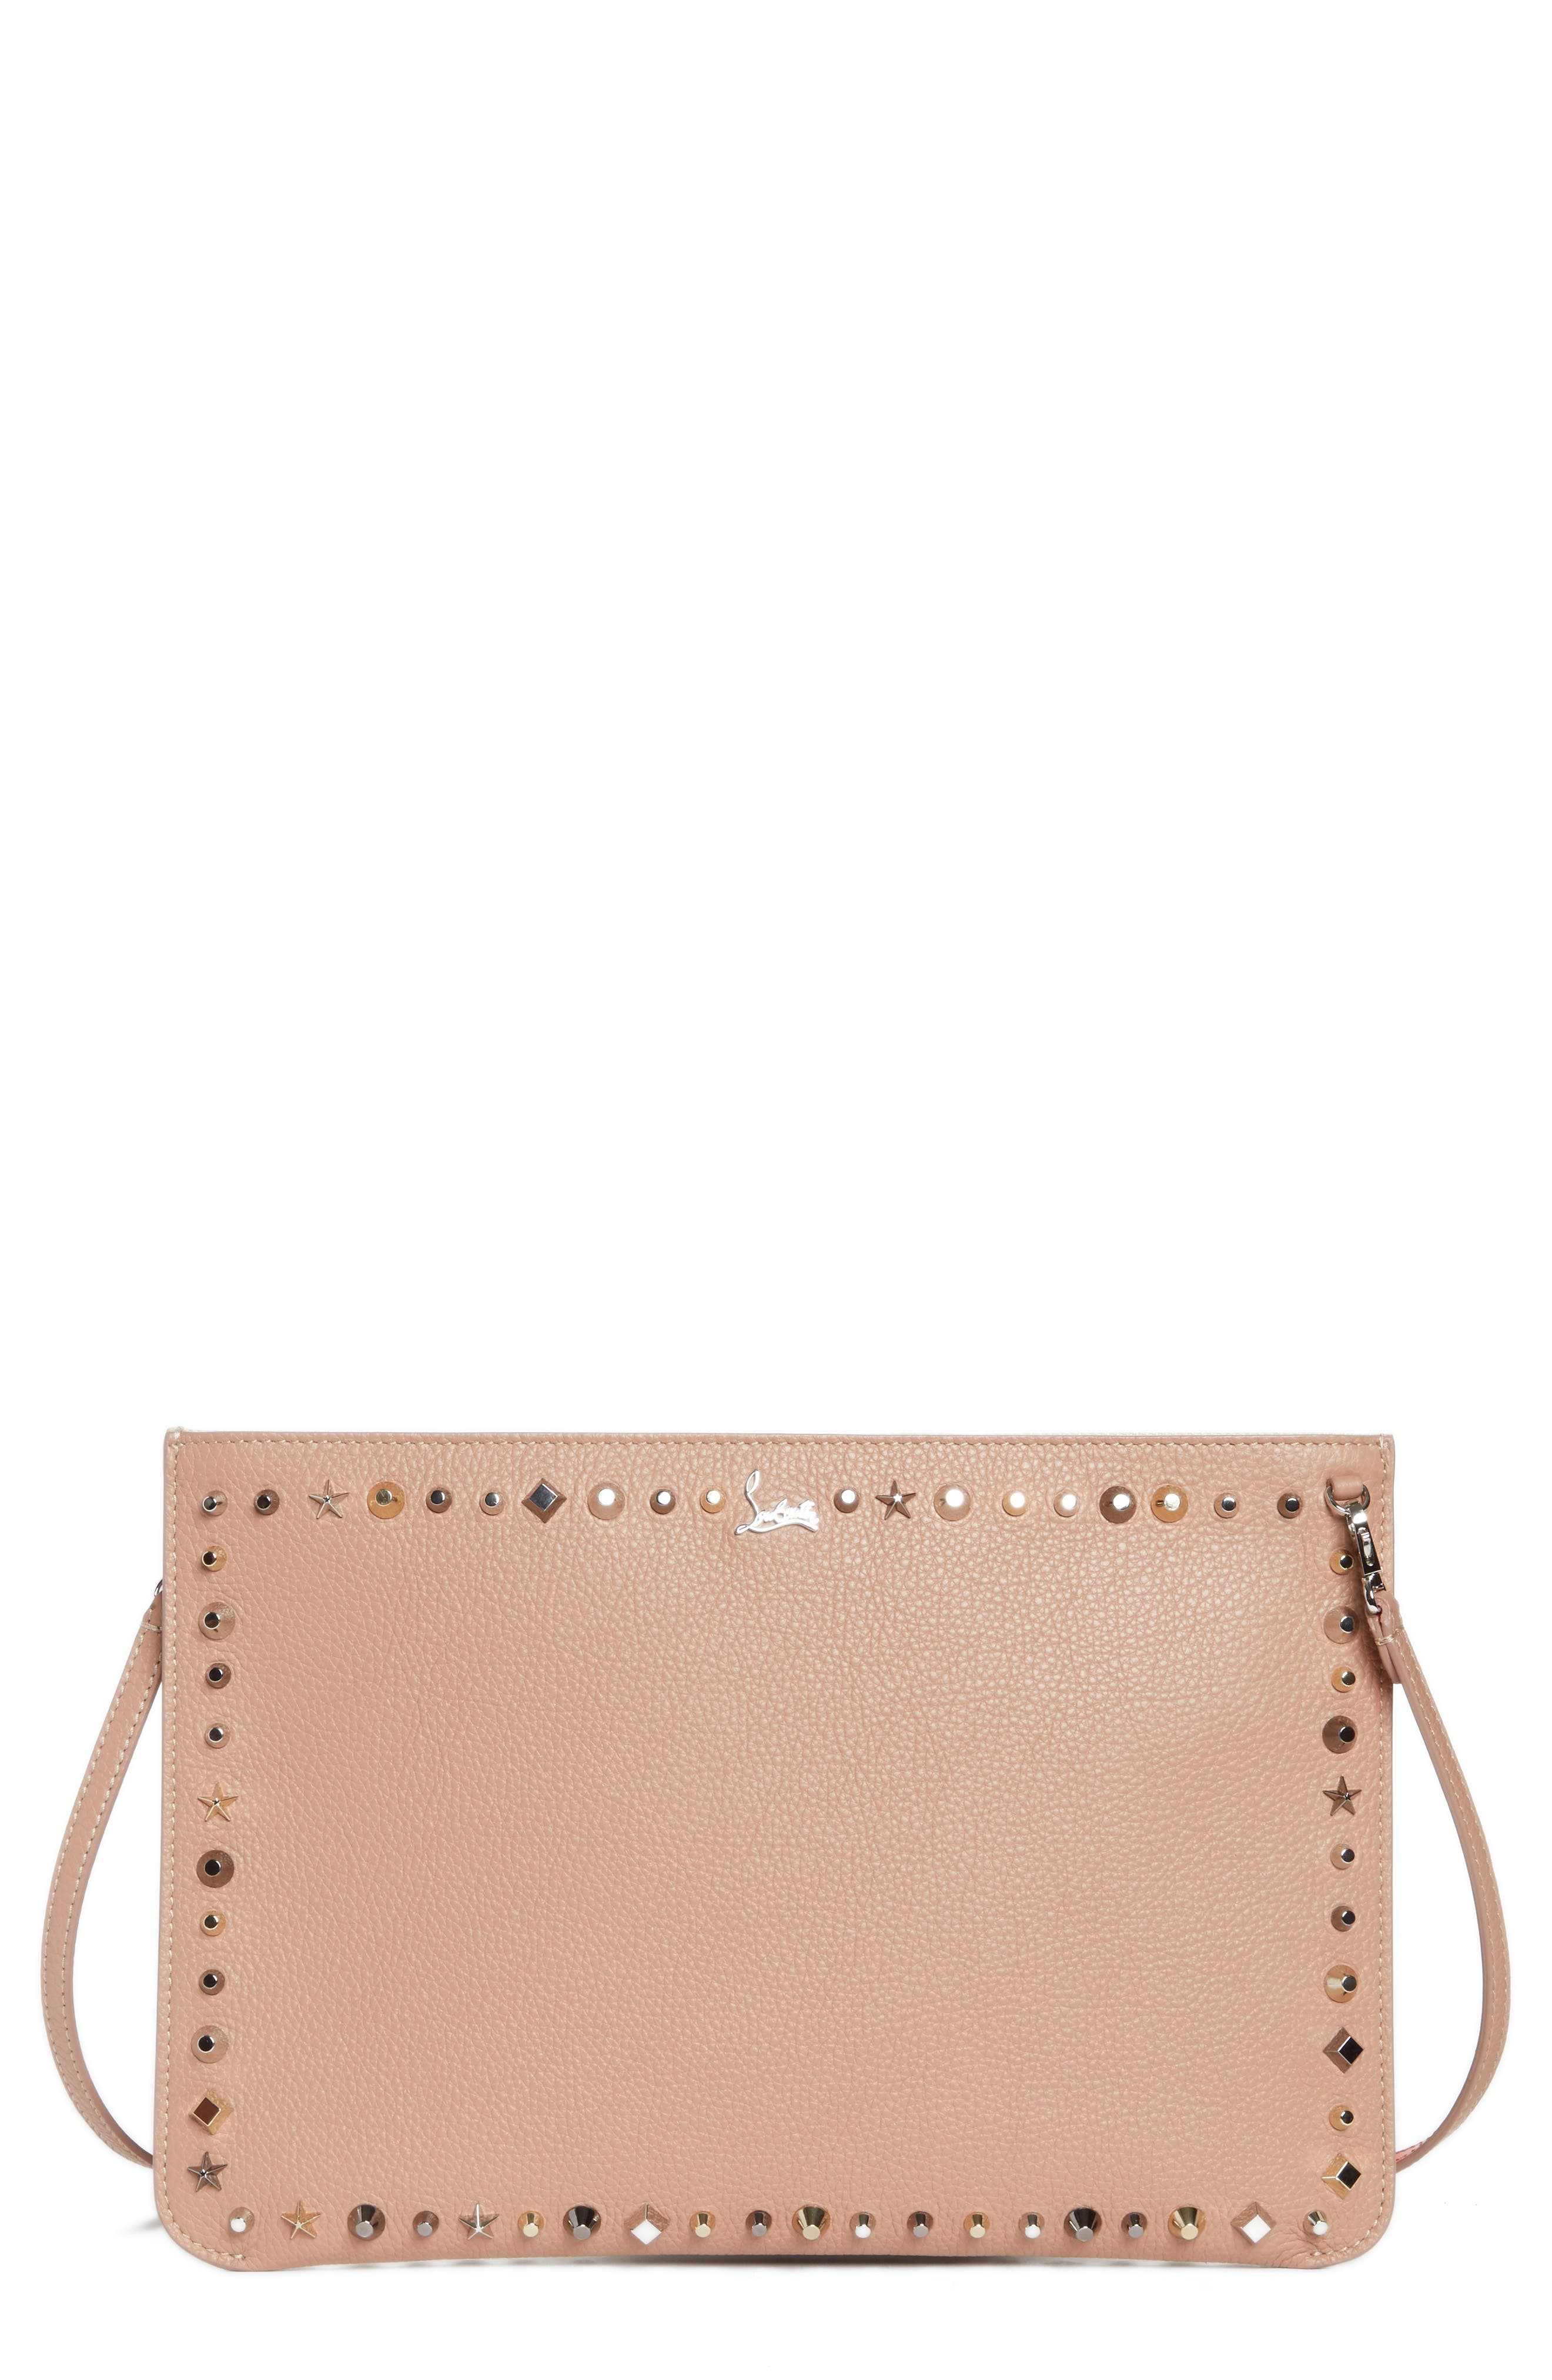 Loubiclutch Spiked Leather Clutch,                         Main,                         color, Nude/ Multimetal